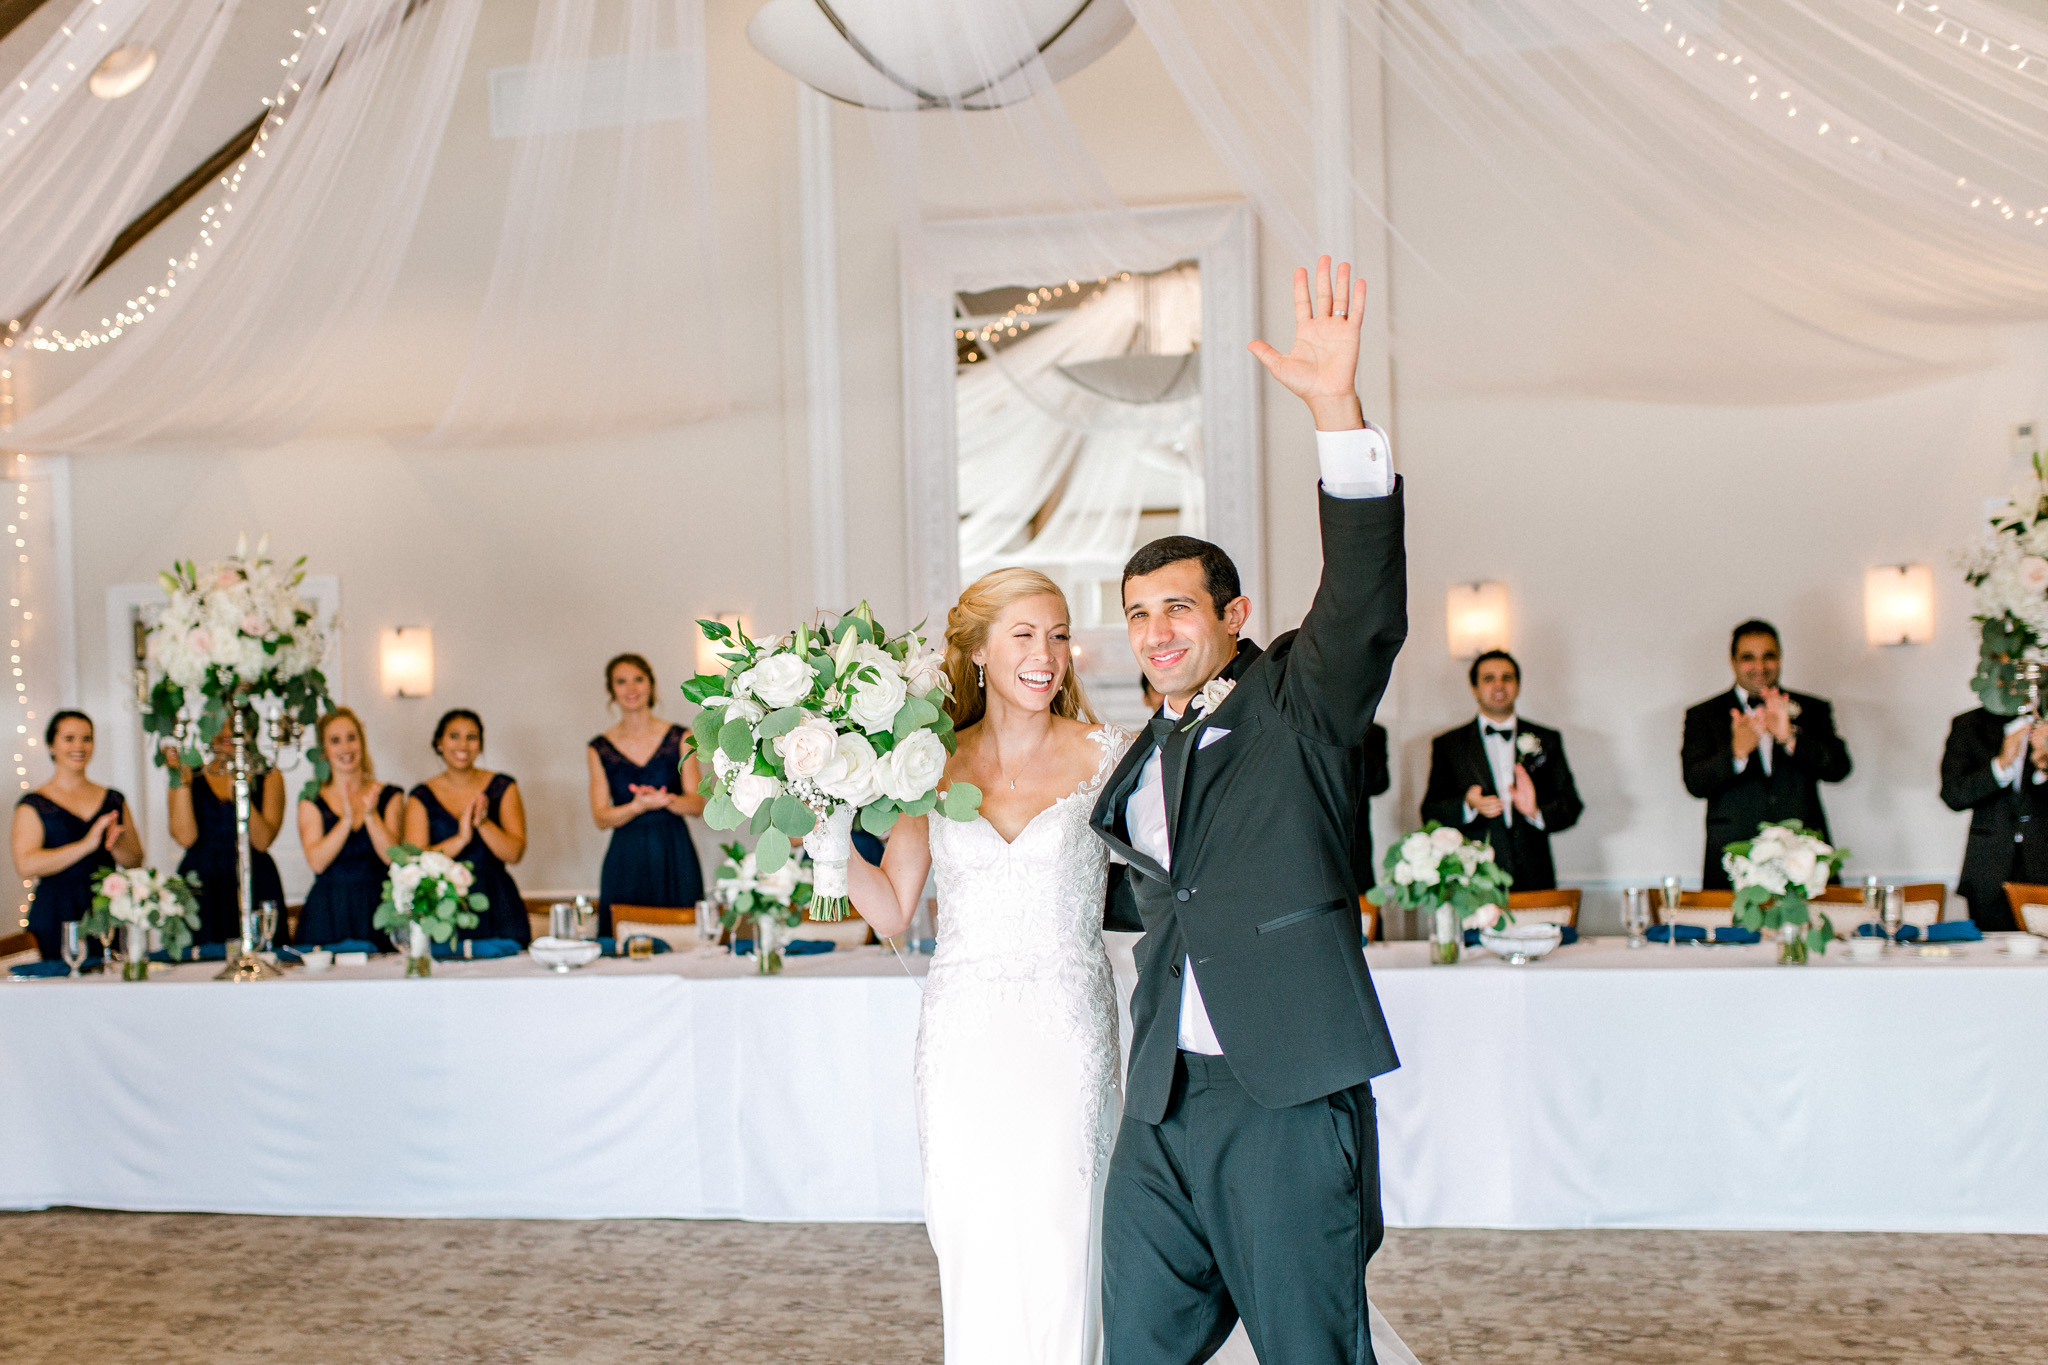 Stunning Country Club Wedding in Kalamazoo Michigan | West Michigan Wedding Photography | Classic Black and White